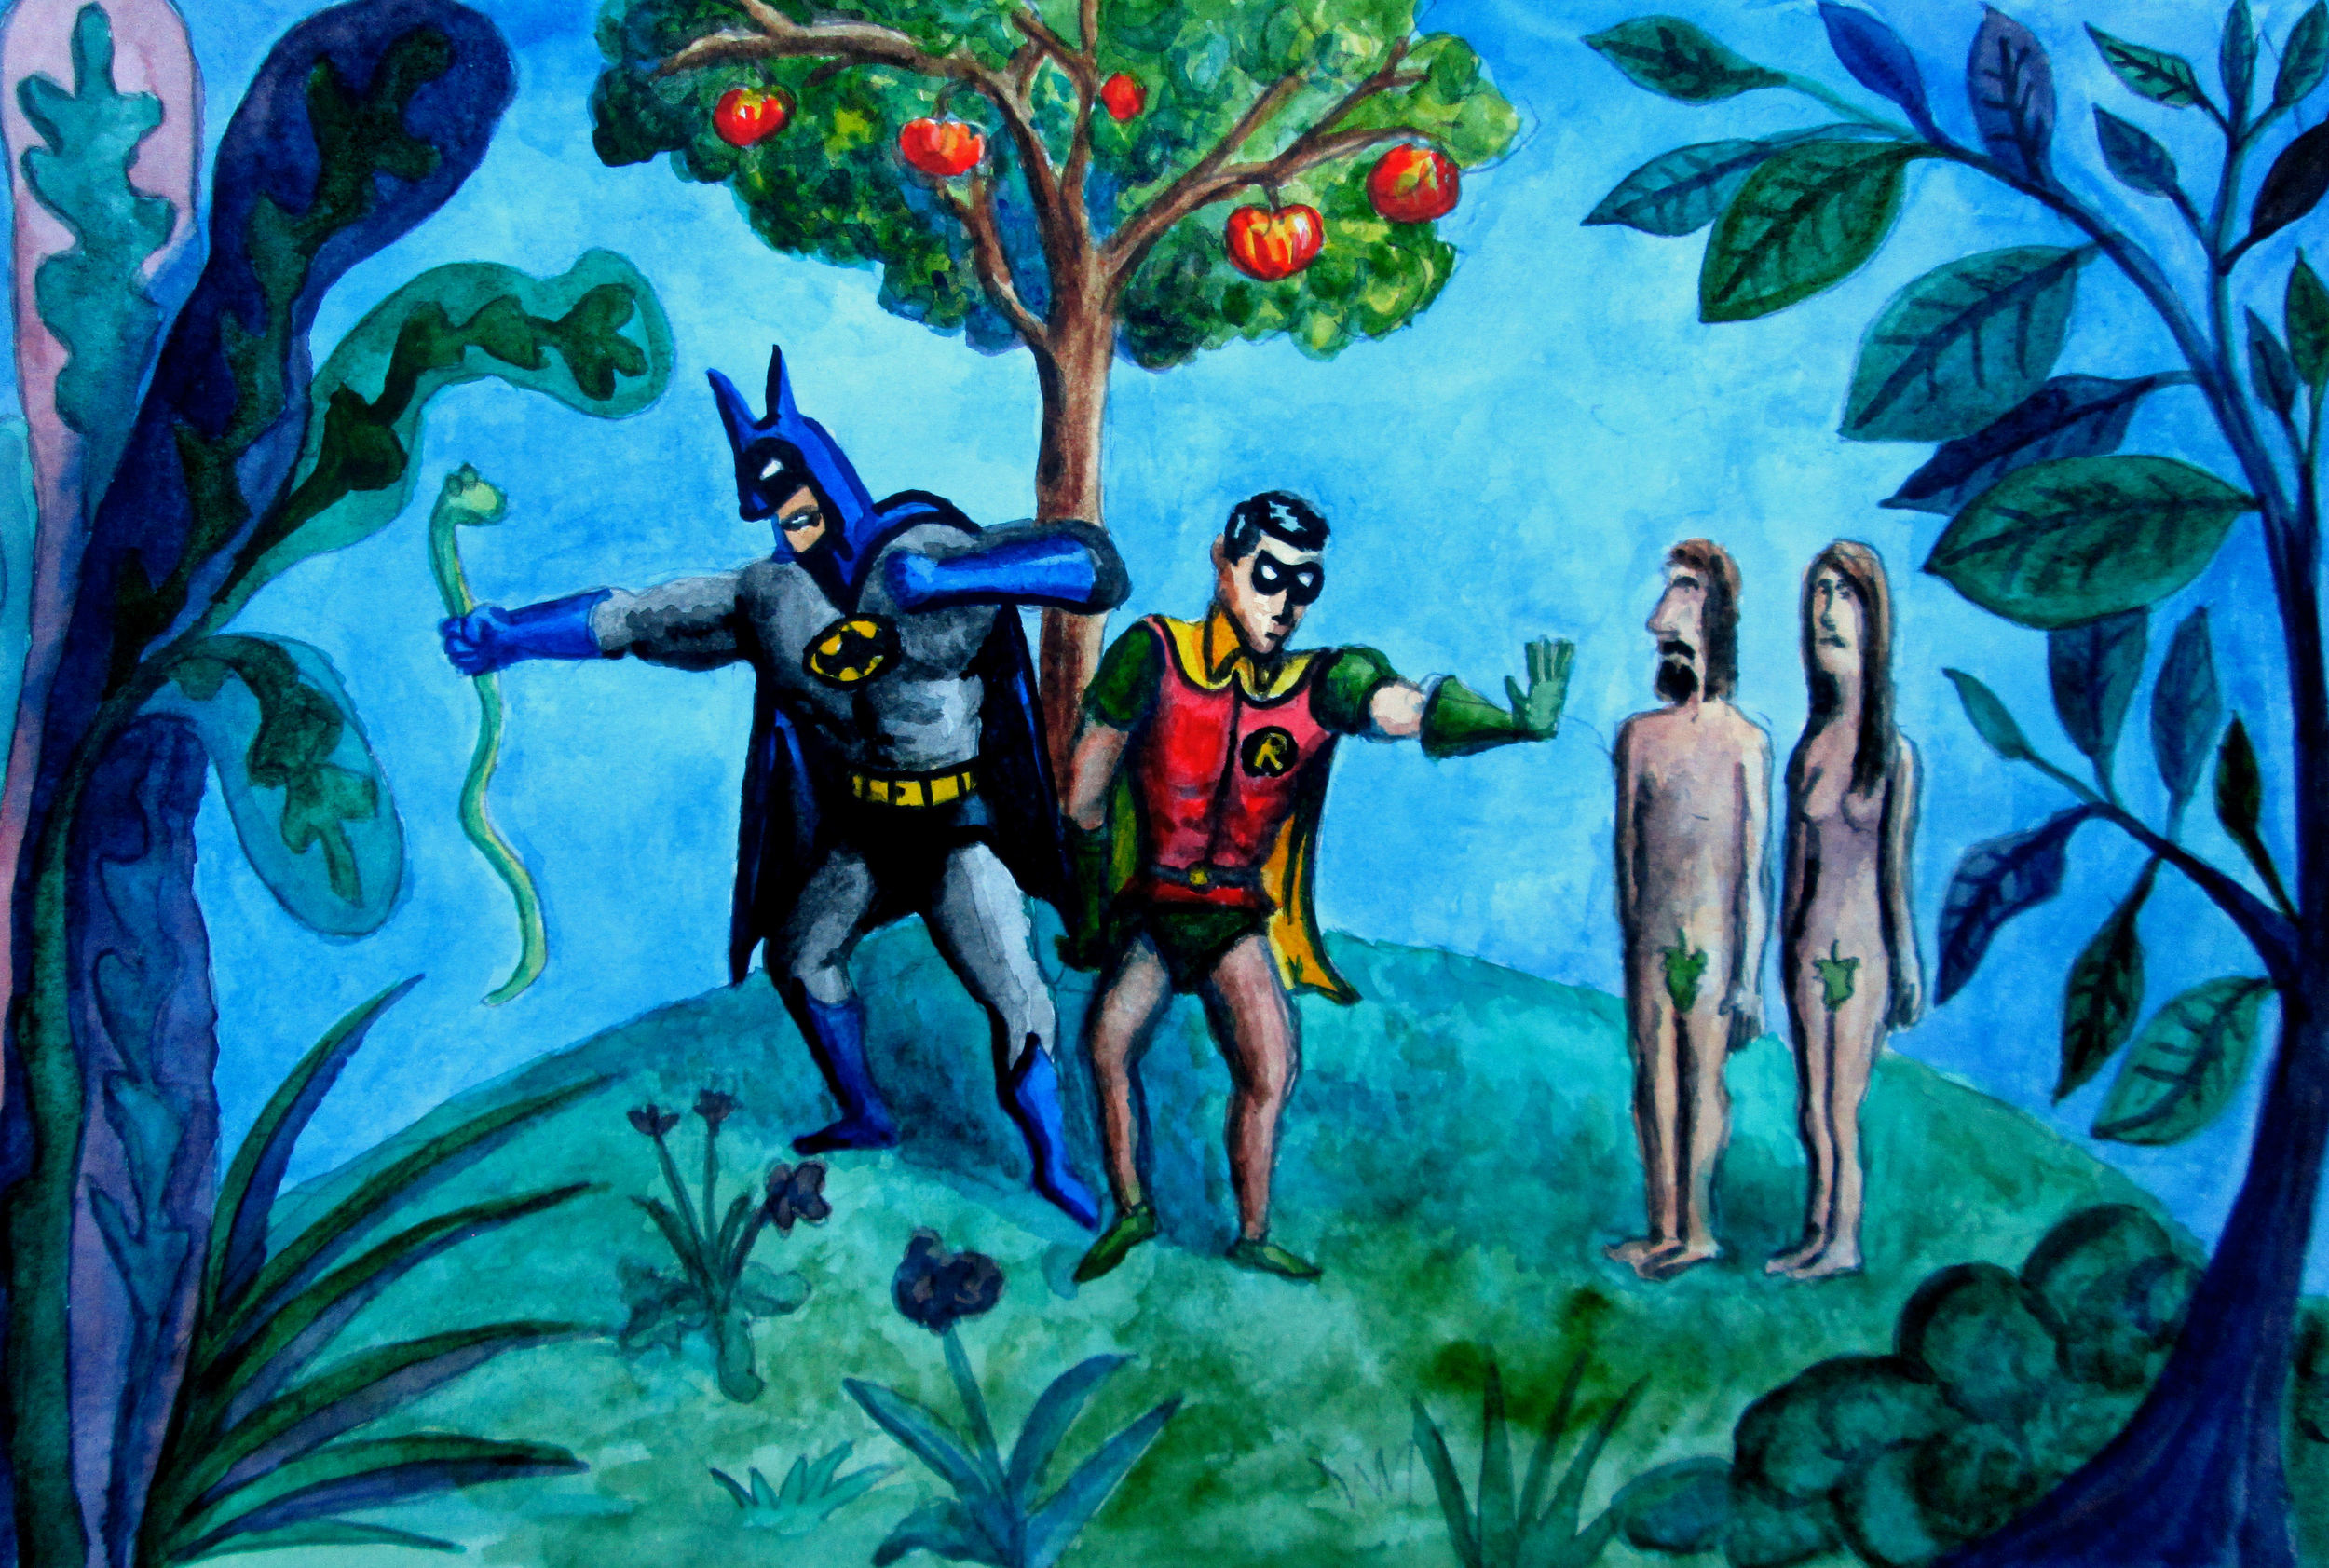 Batman and Robin in the Garden of Eden